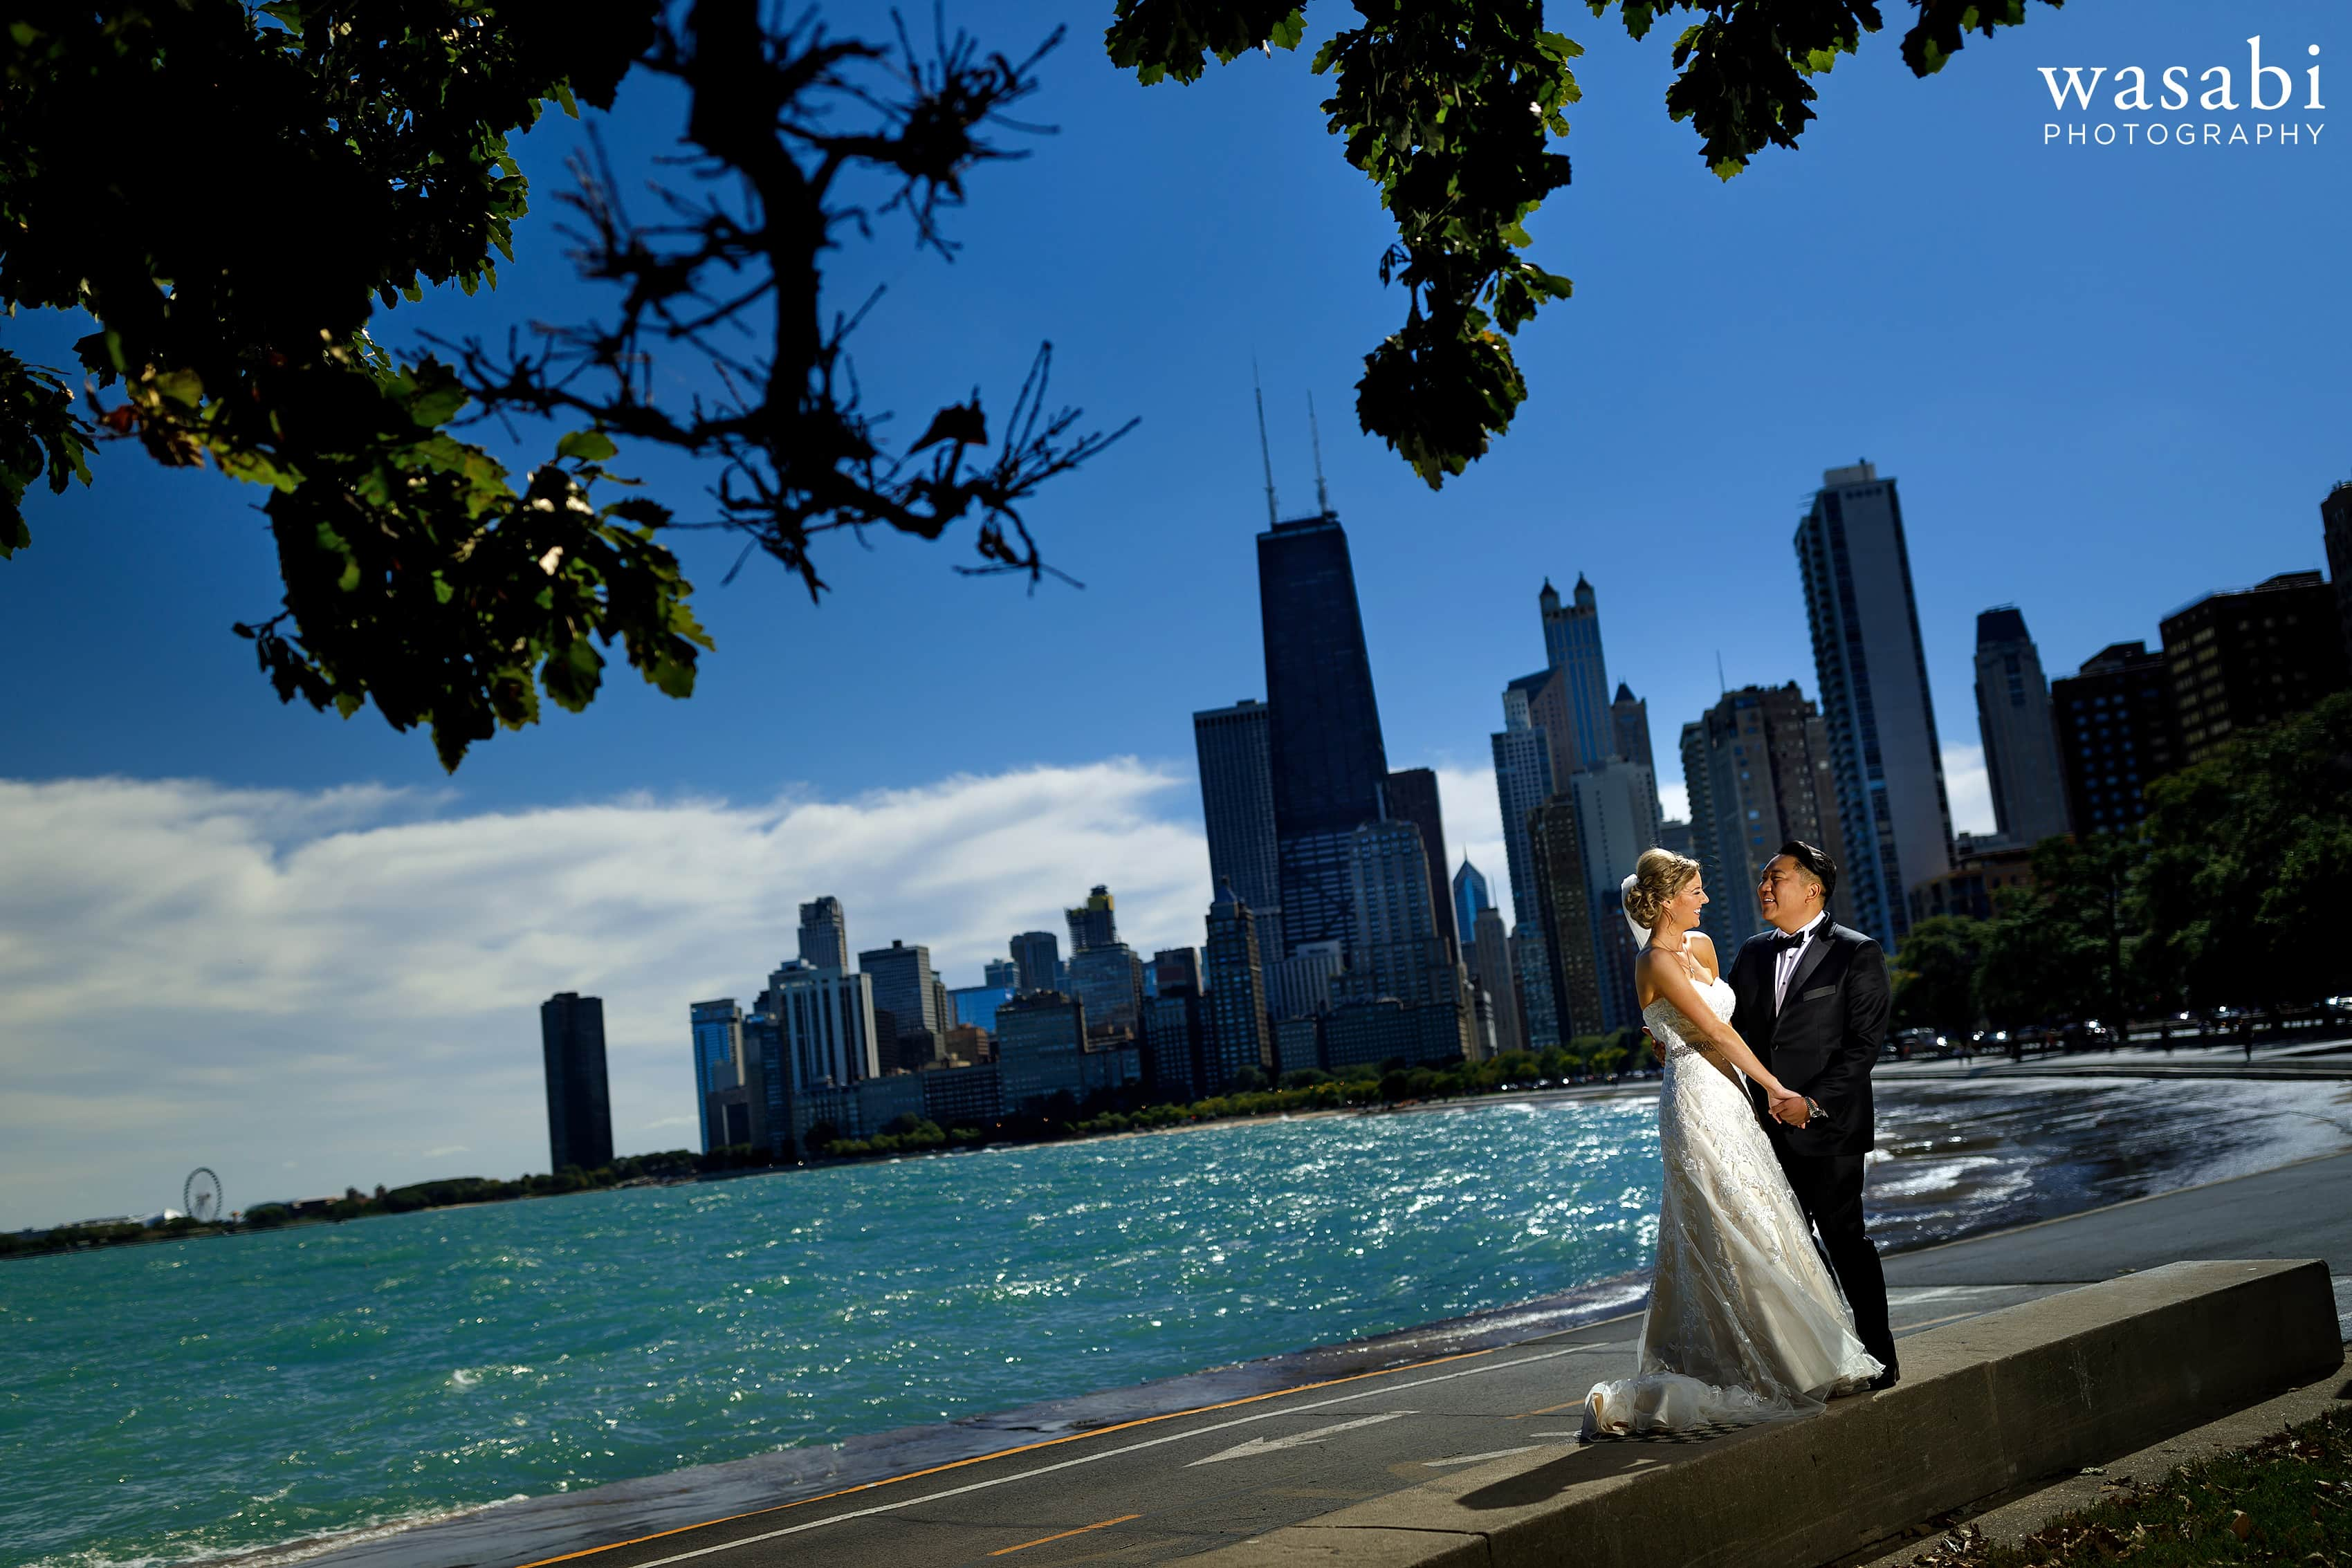 Lit portrait in full sun of bride and groom portrait at North Avenue Beach with Chicago skyline and Lake Michigan in the background